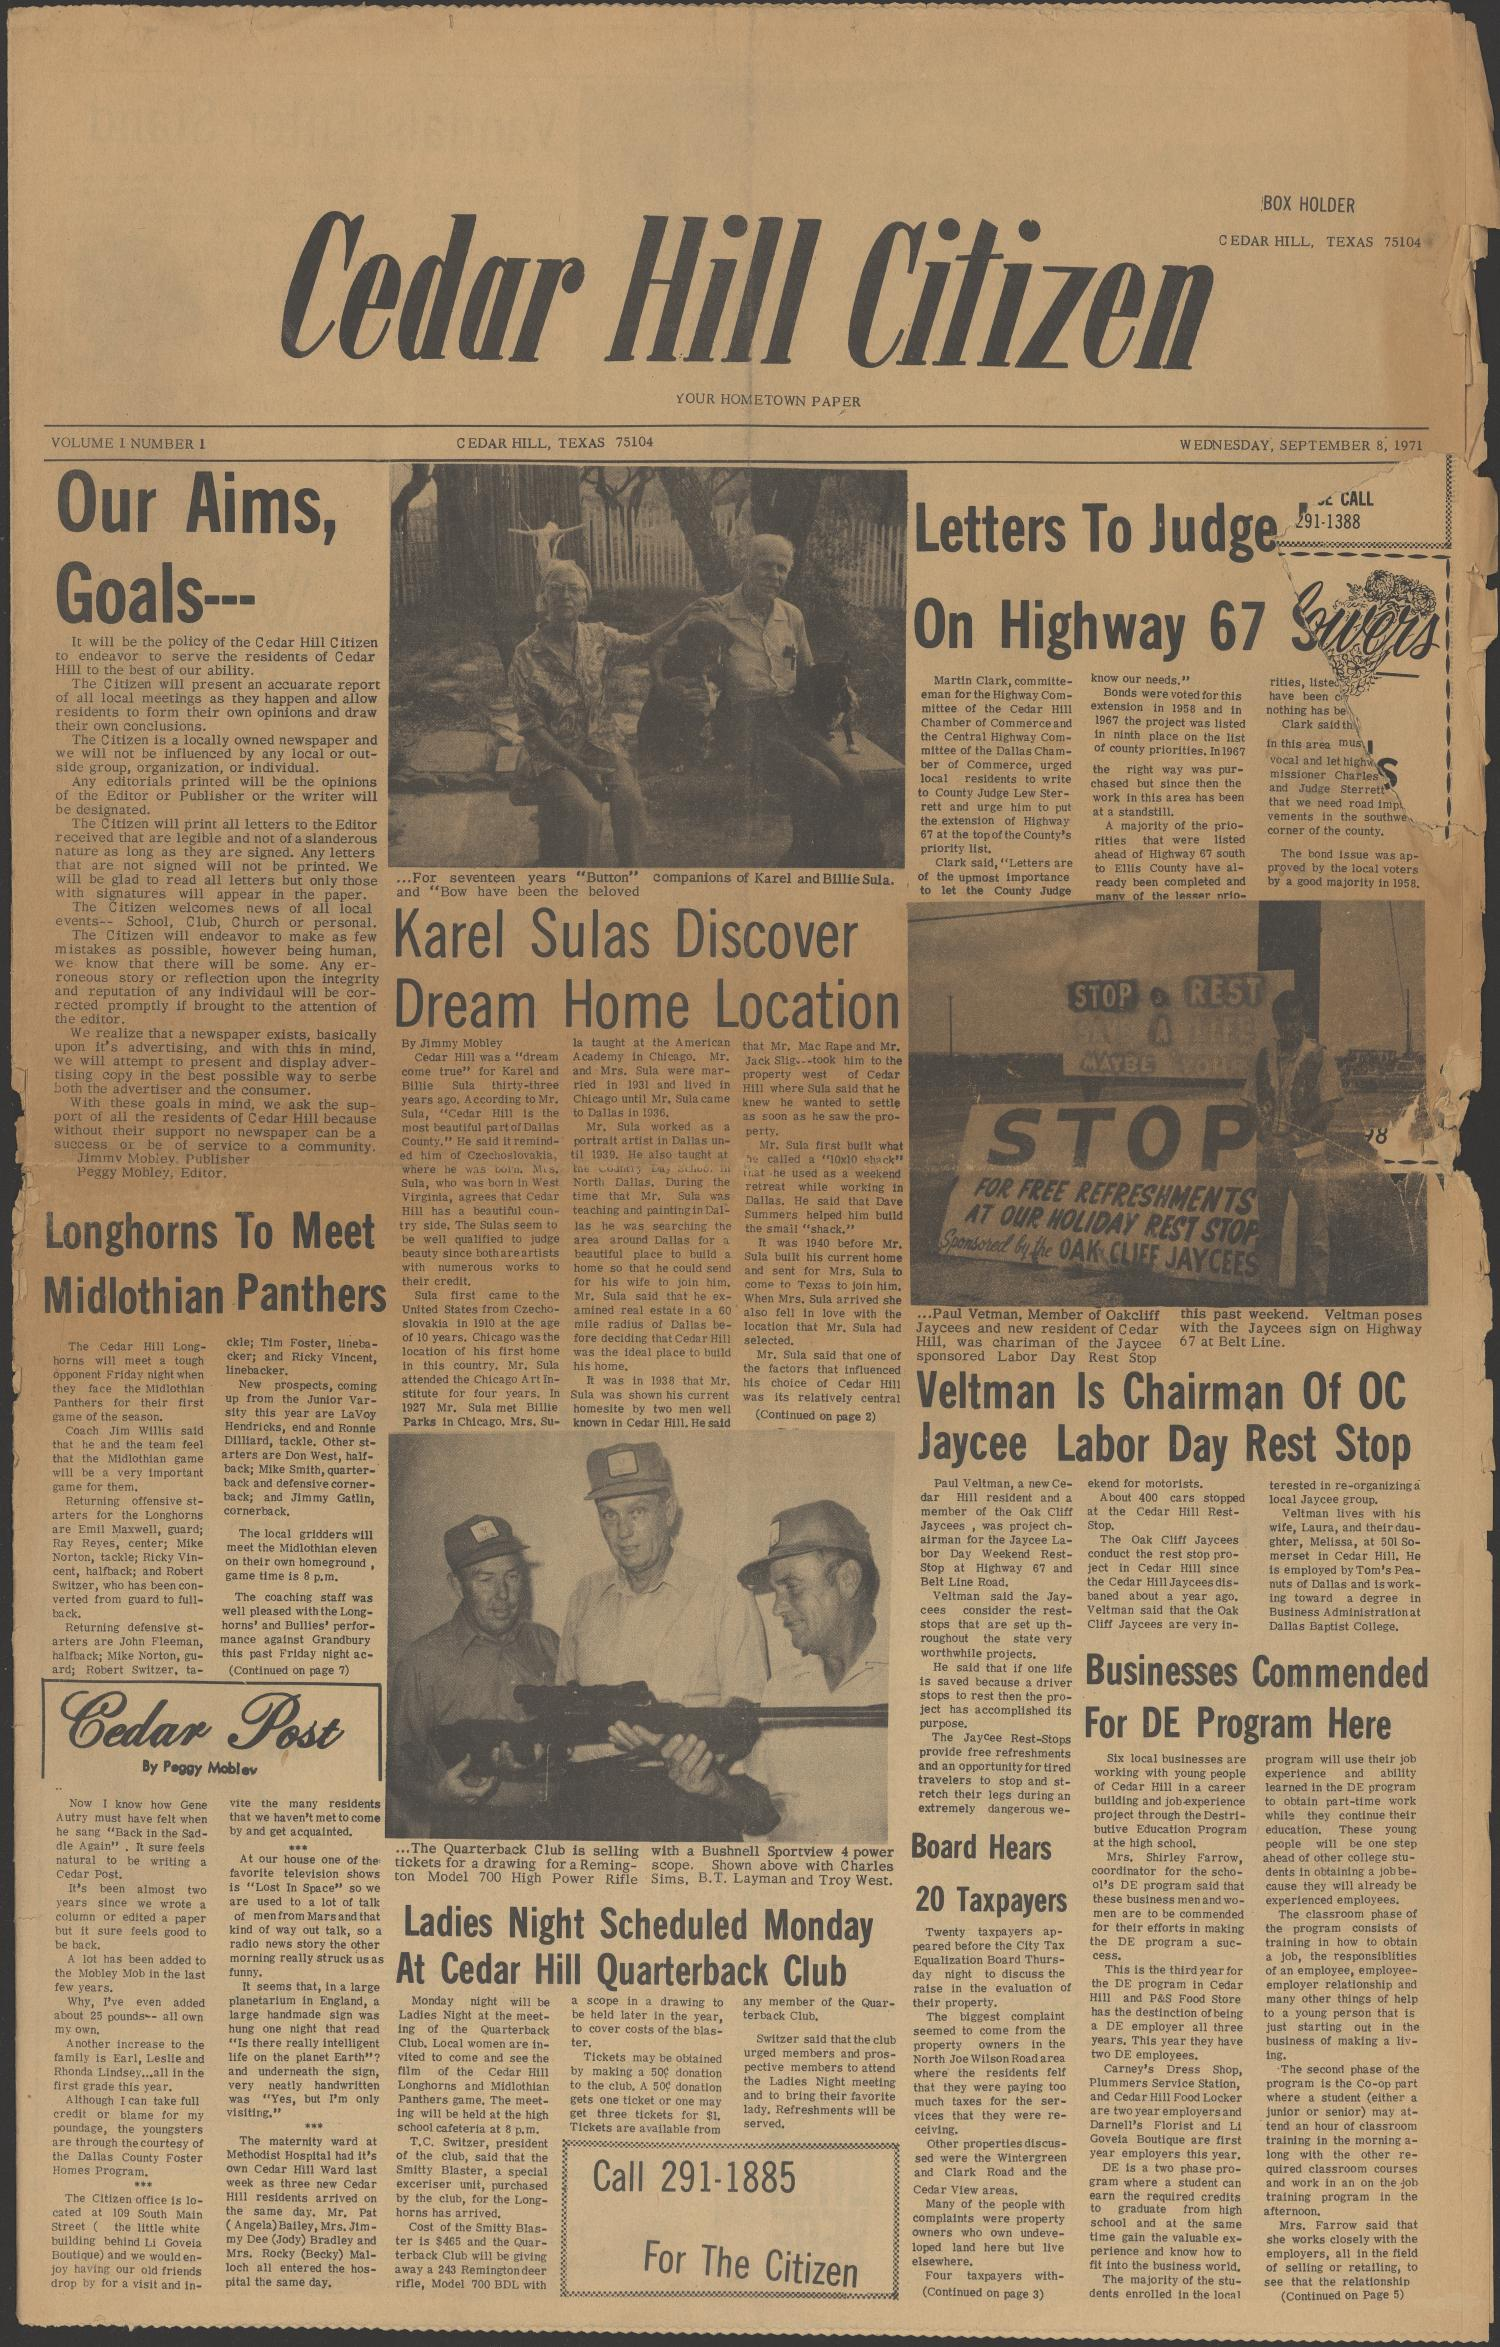 Cedar Hill Citizen (Cedar Hill, Tex.), Vol. 1, No. 1, Ed. 1 Wednesday, September 8, 1971                                                                                                      [Sequence #]: 1 of 8